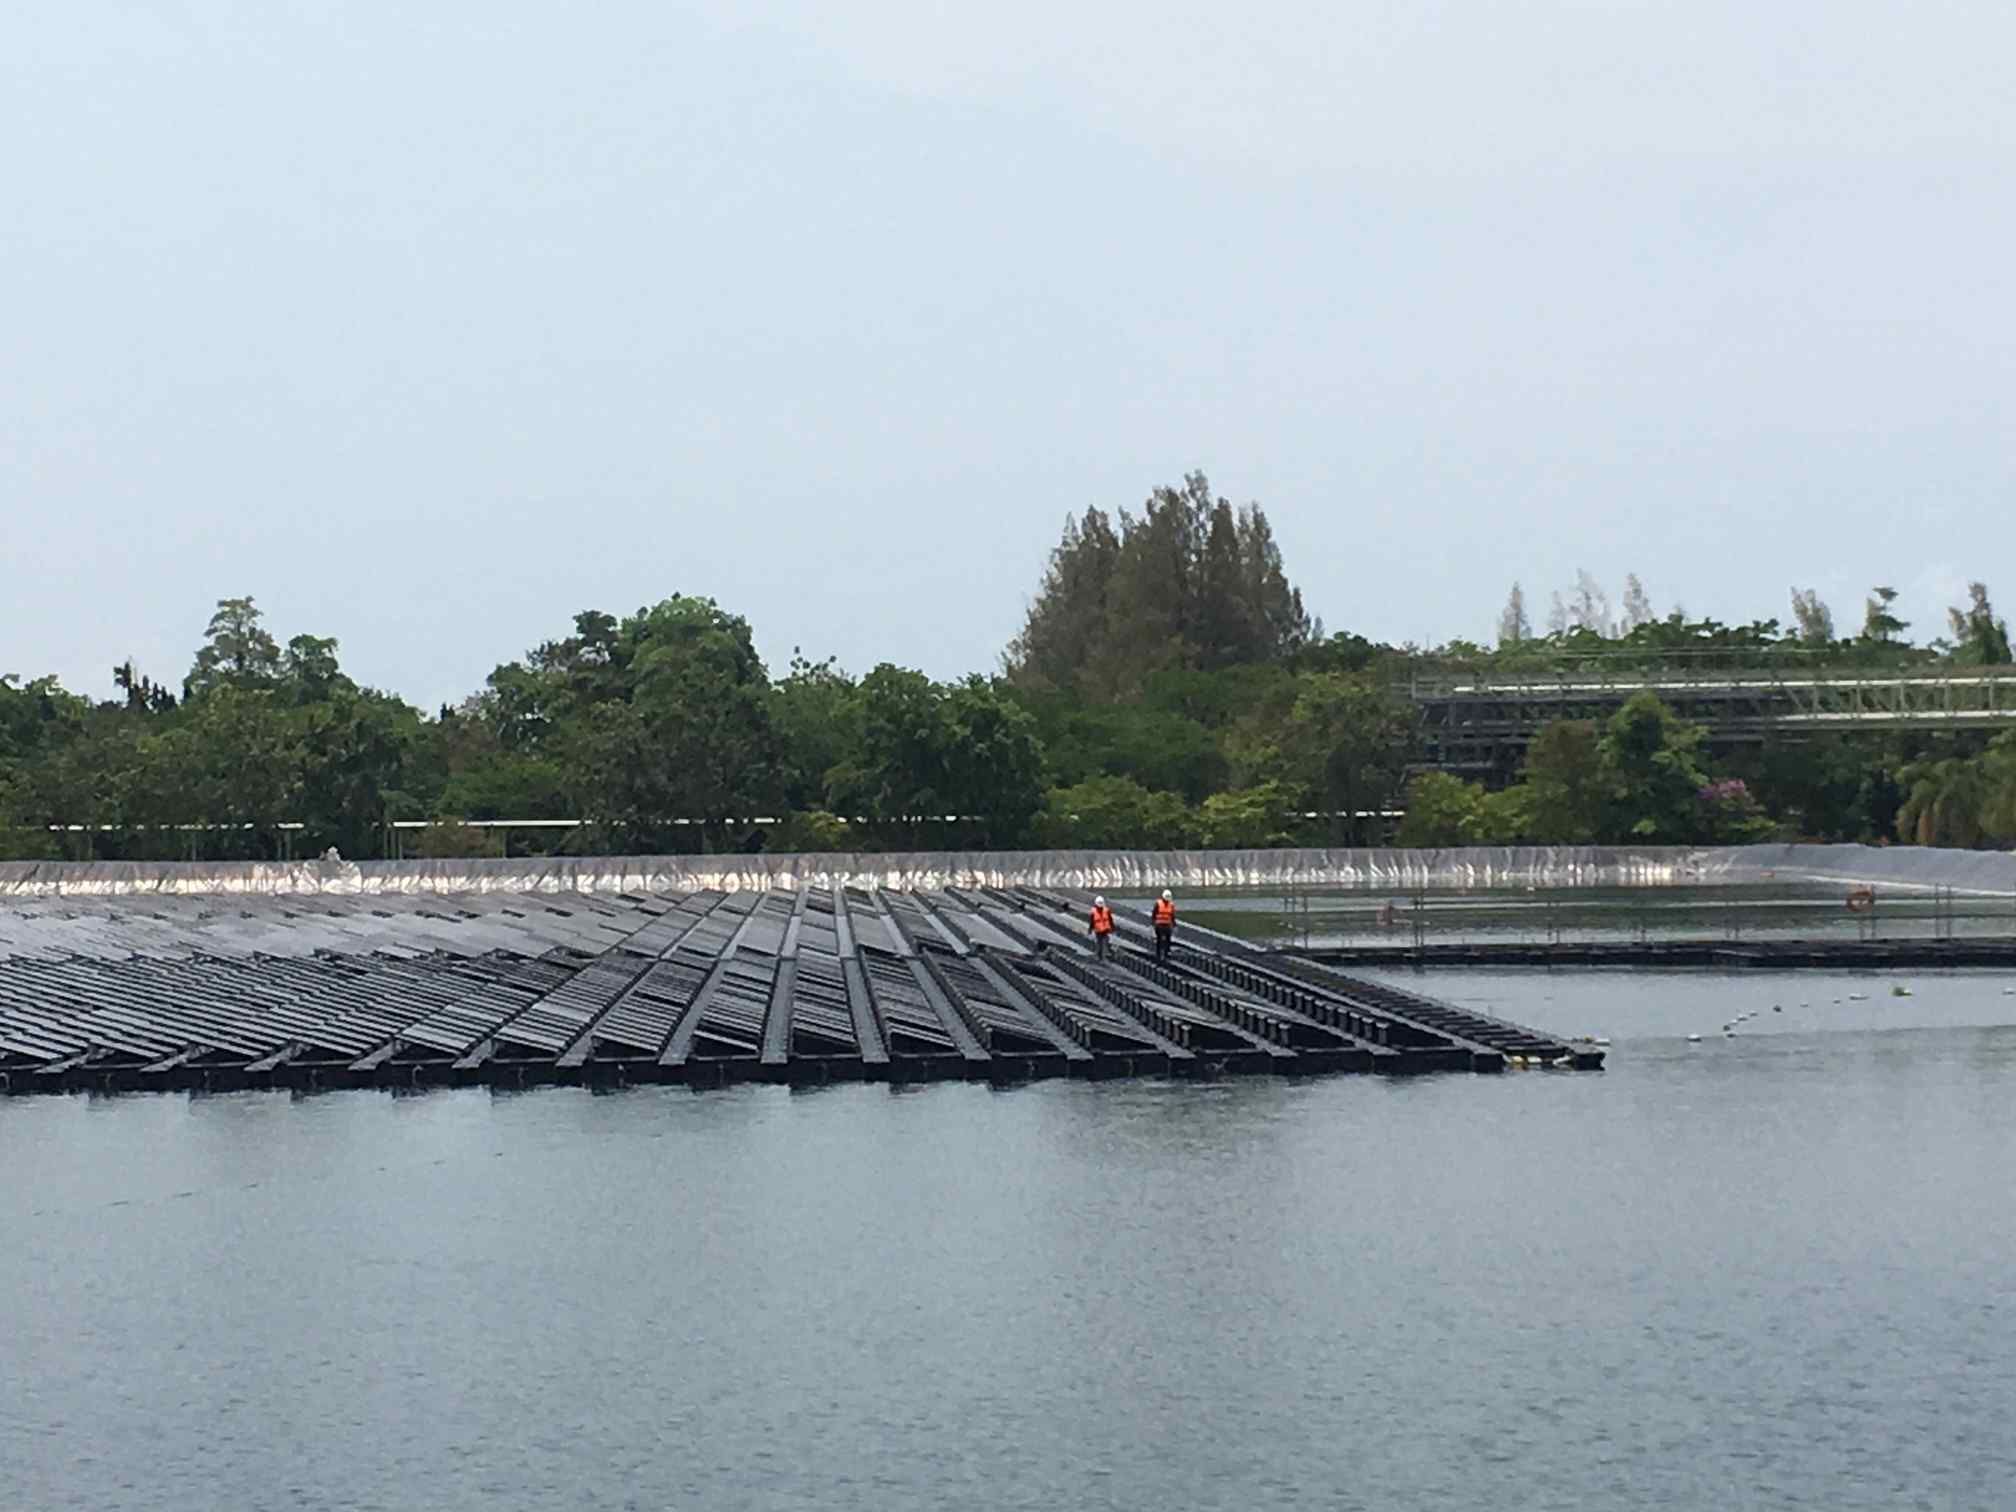 Thailand to build world's biggest network of floating solar